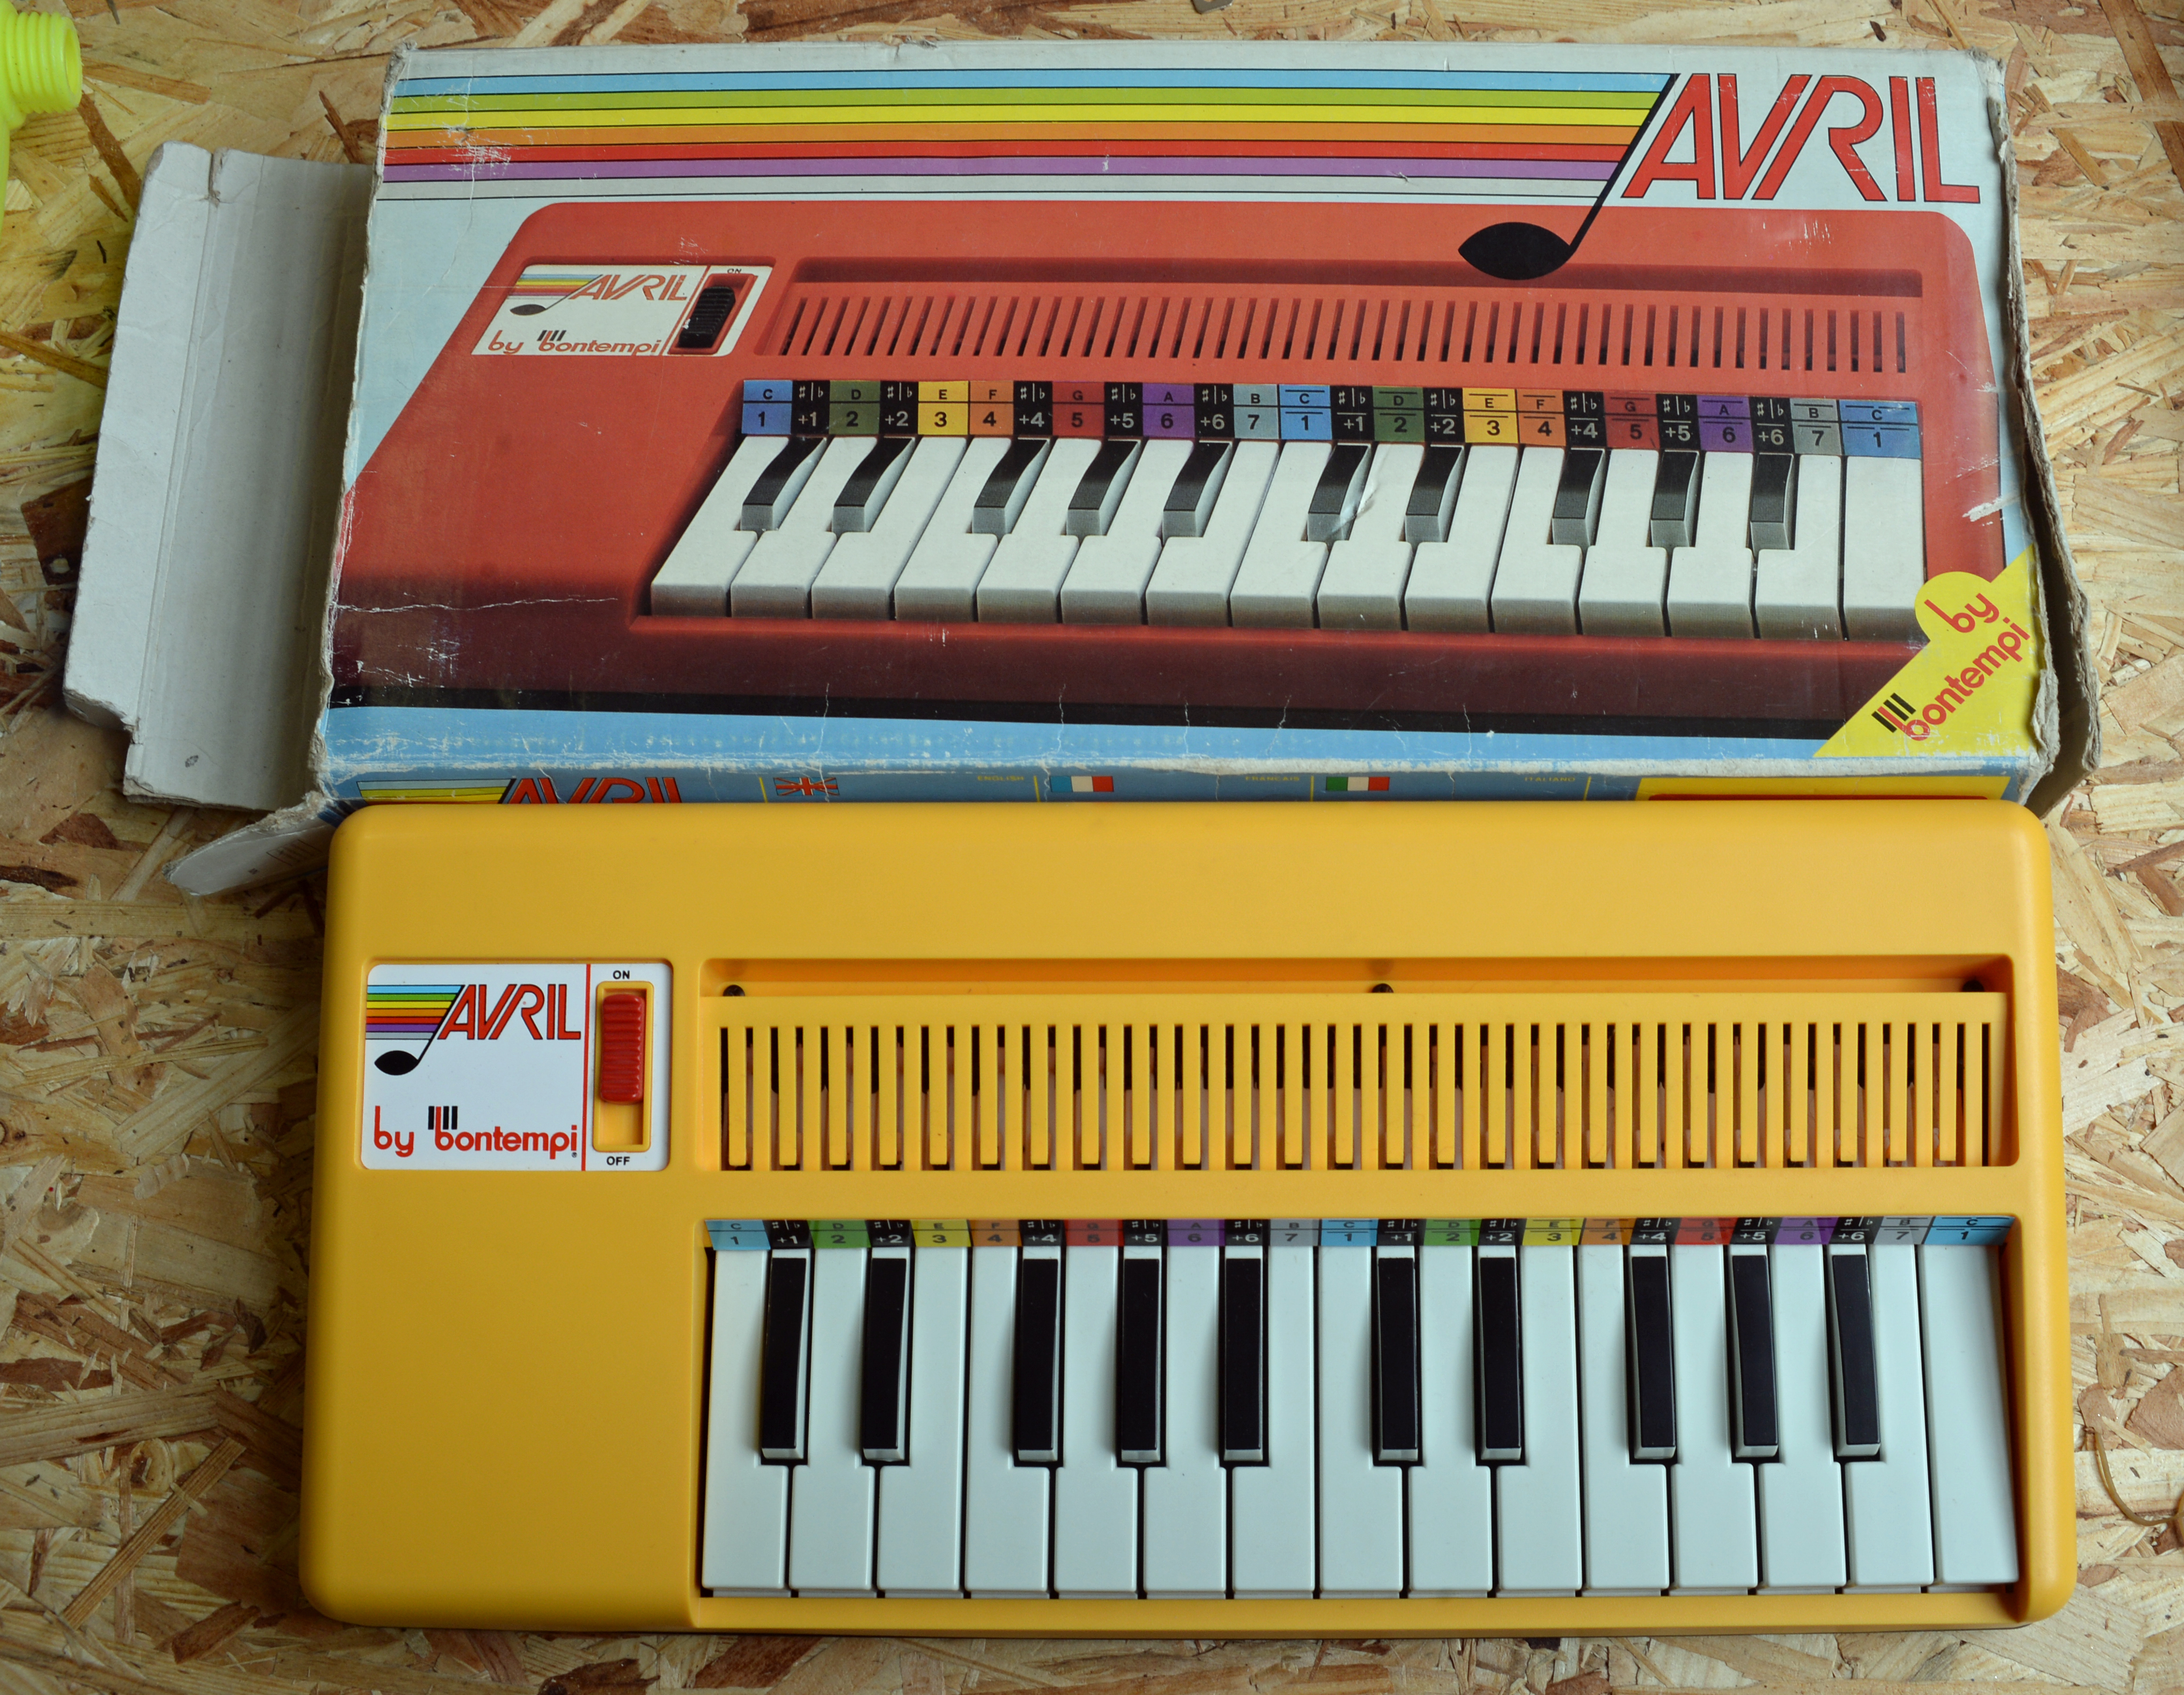 fileavril by bontempi mini electronic organ made in  (  - fileavril by bontempi mini electronic organ made in  (